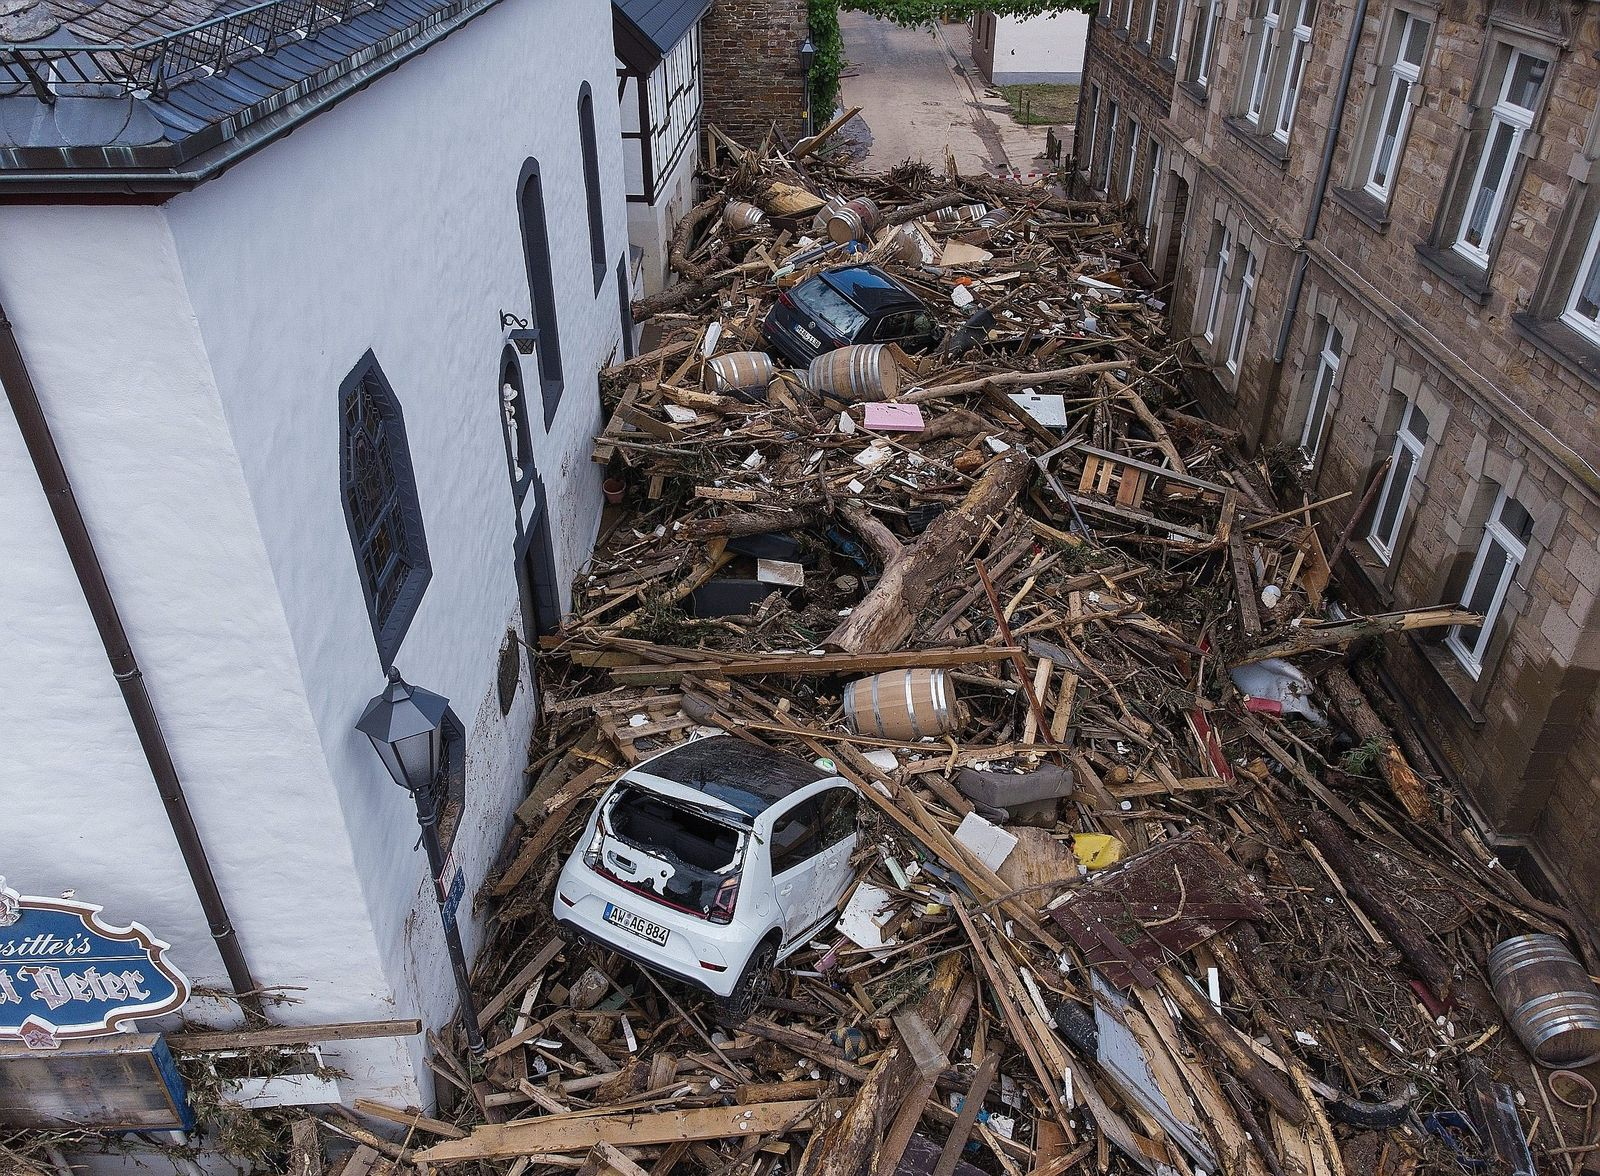 Germany: Flood Disaster Could Become a Major Issue in Election - DER SPIEGEL